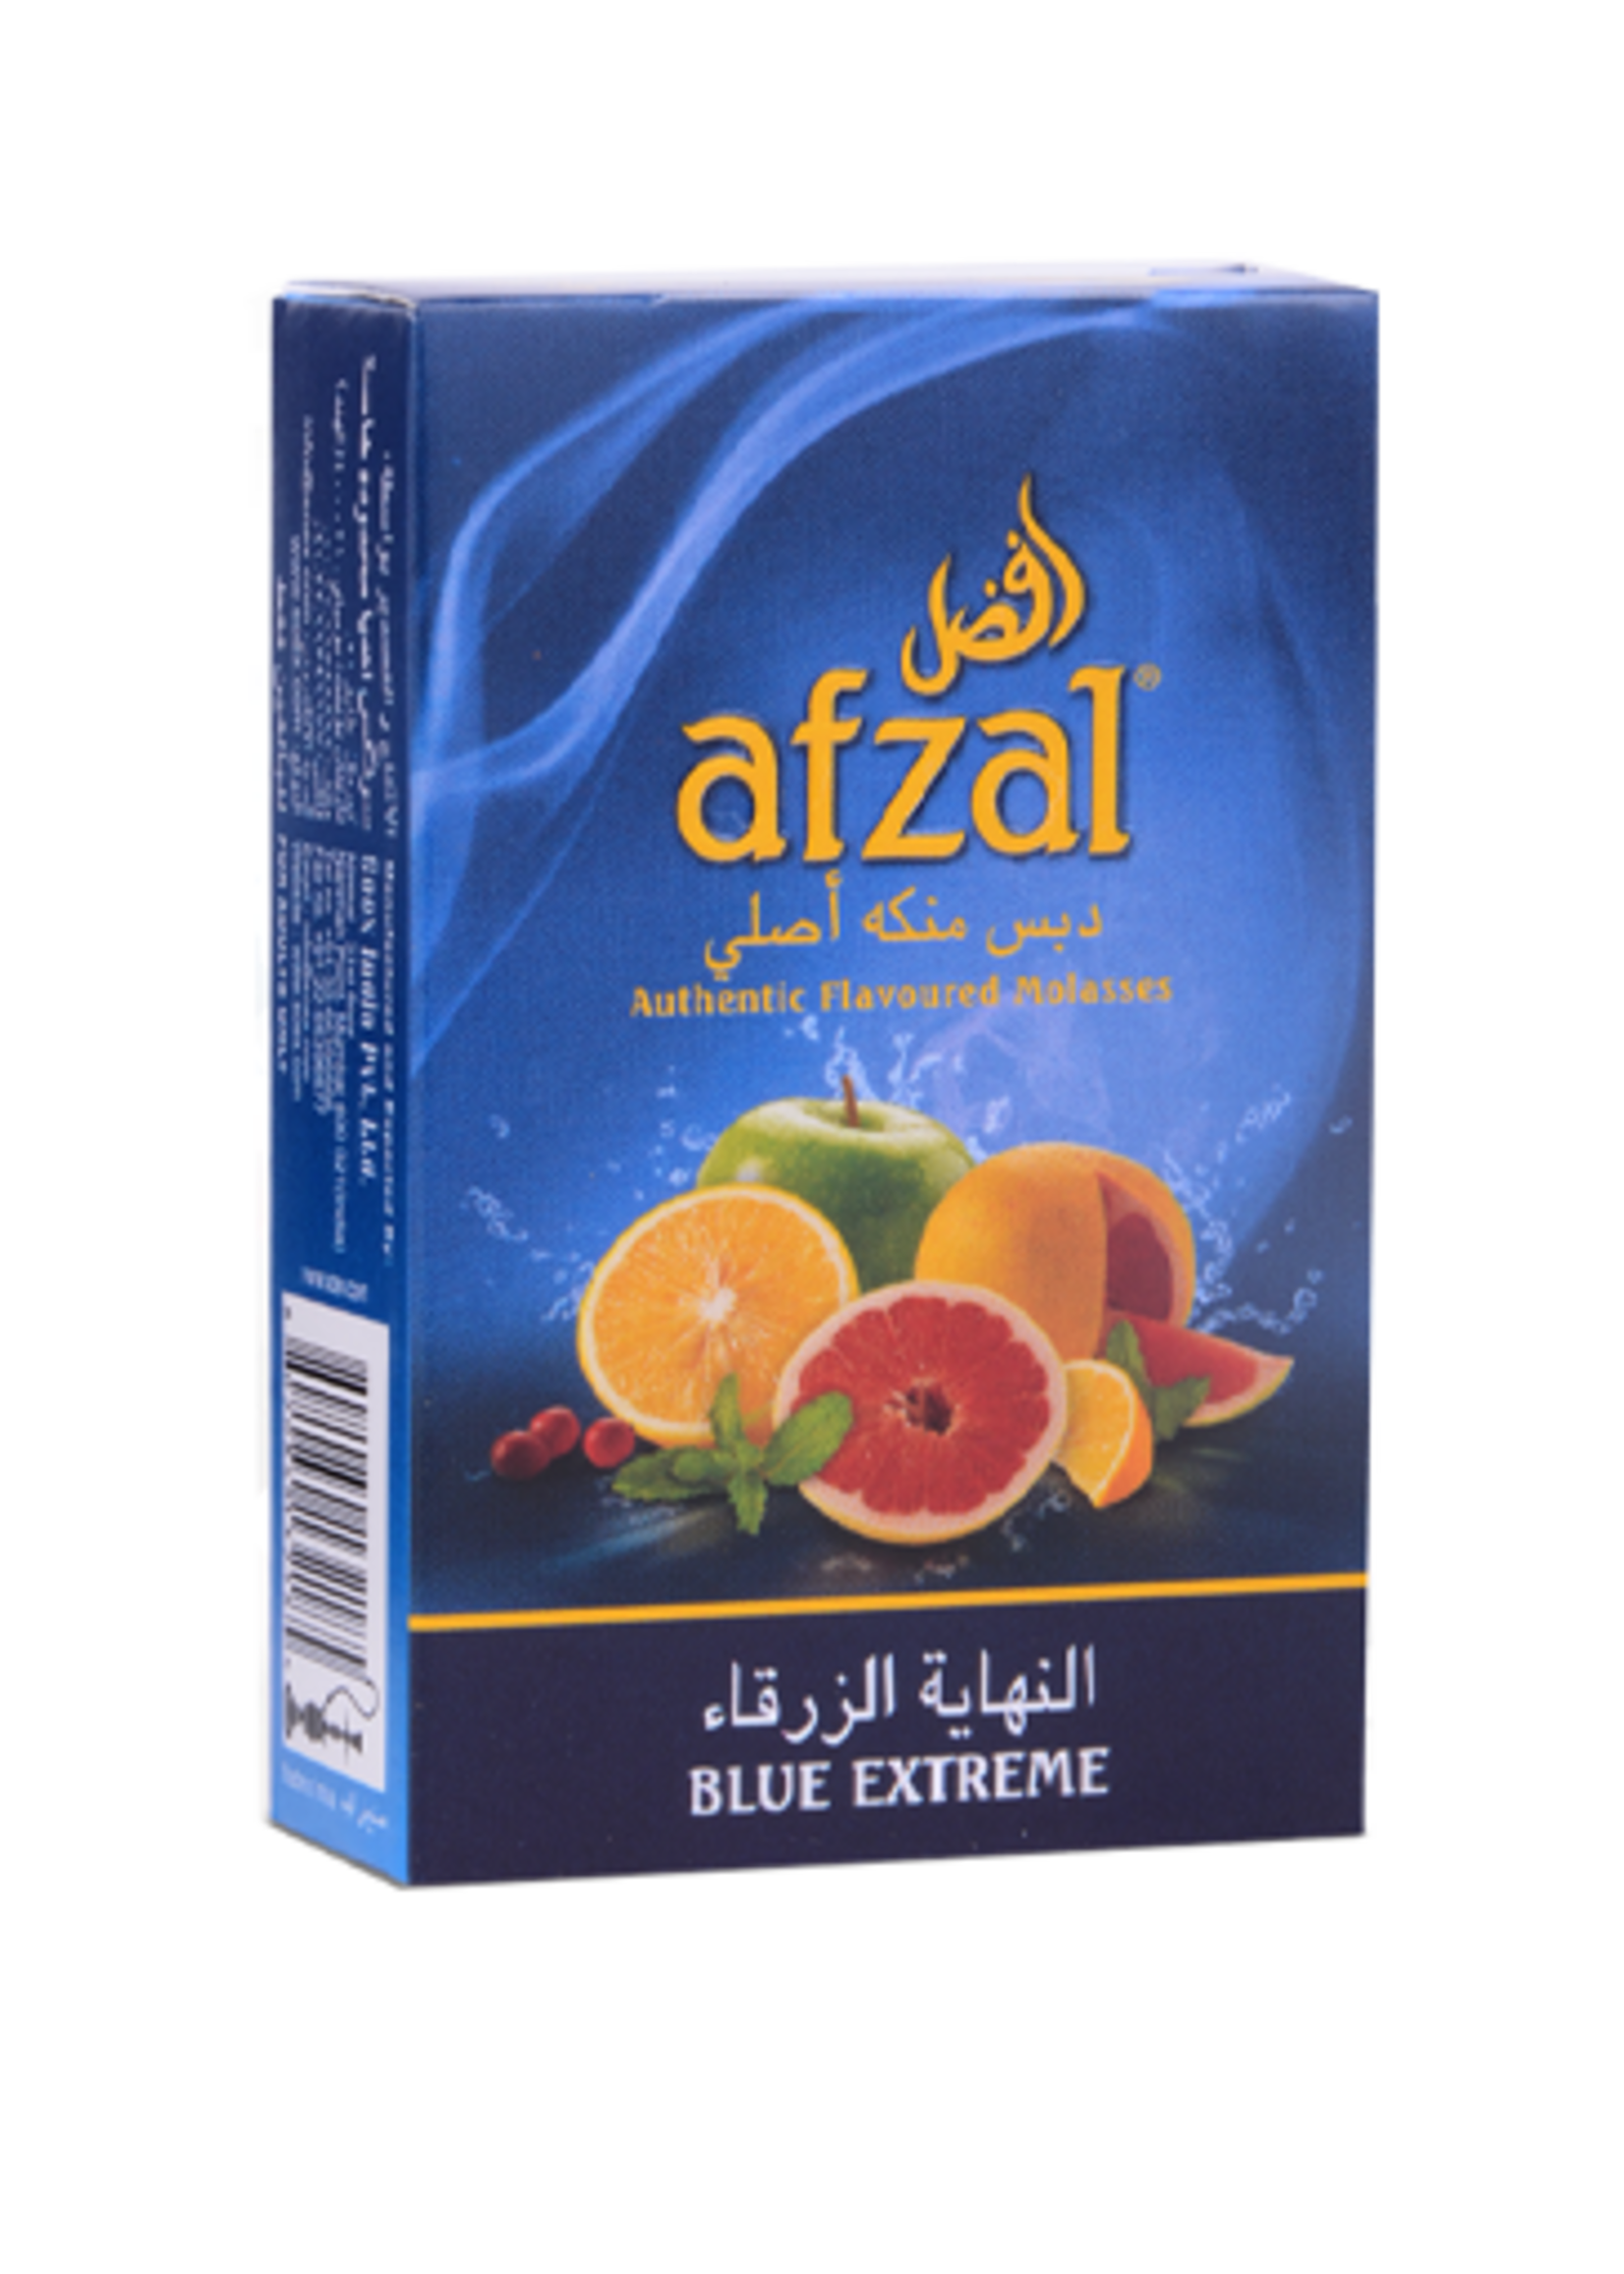 Afzal hubbly flavour - blue extreme